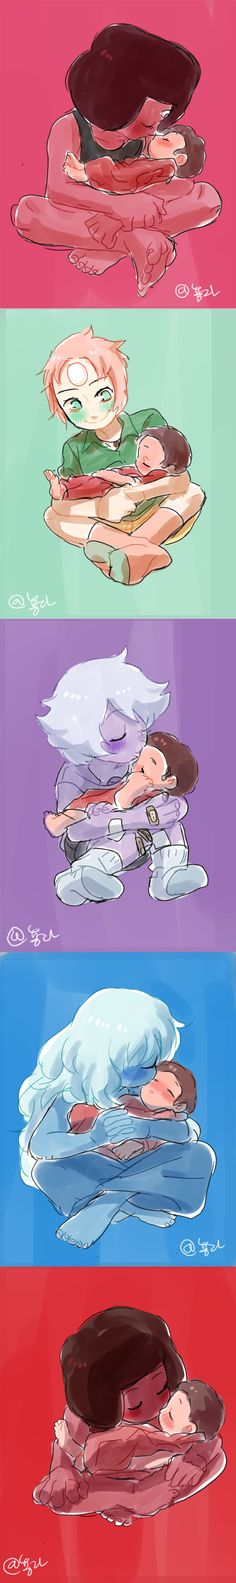 Baby Steven and The Crystal Gems.